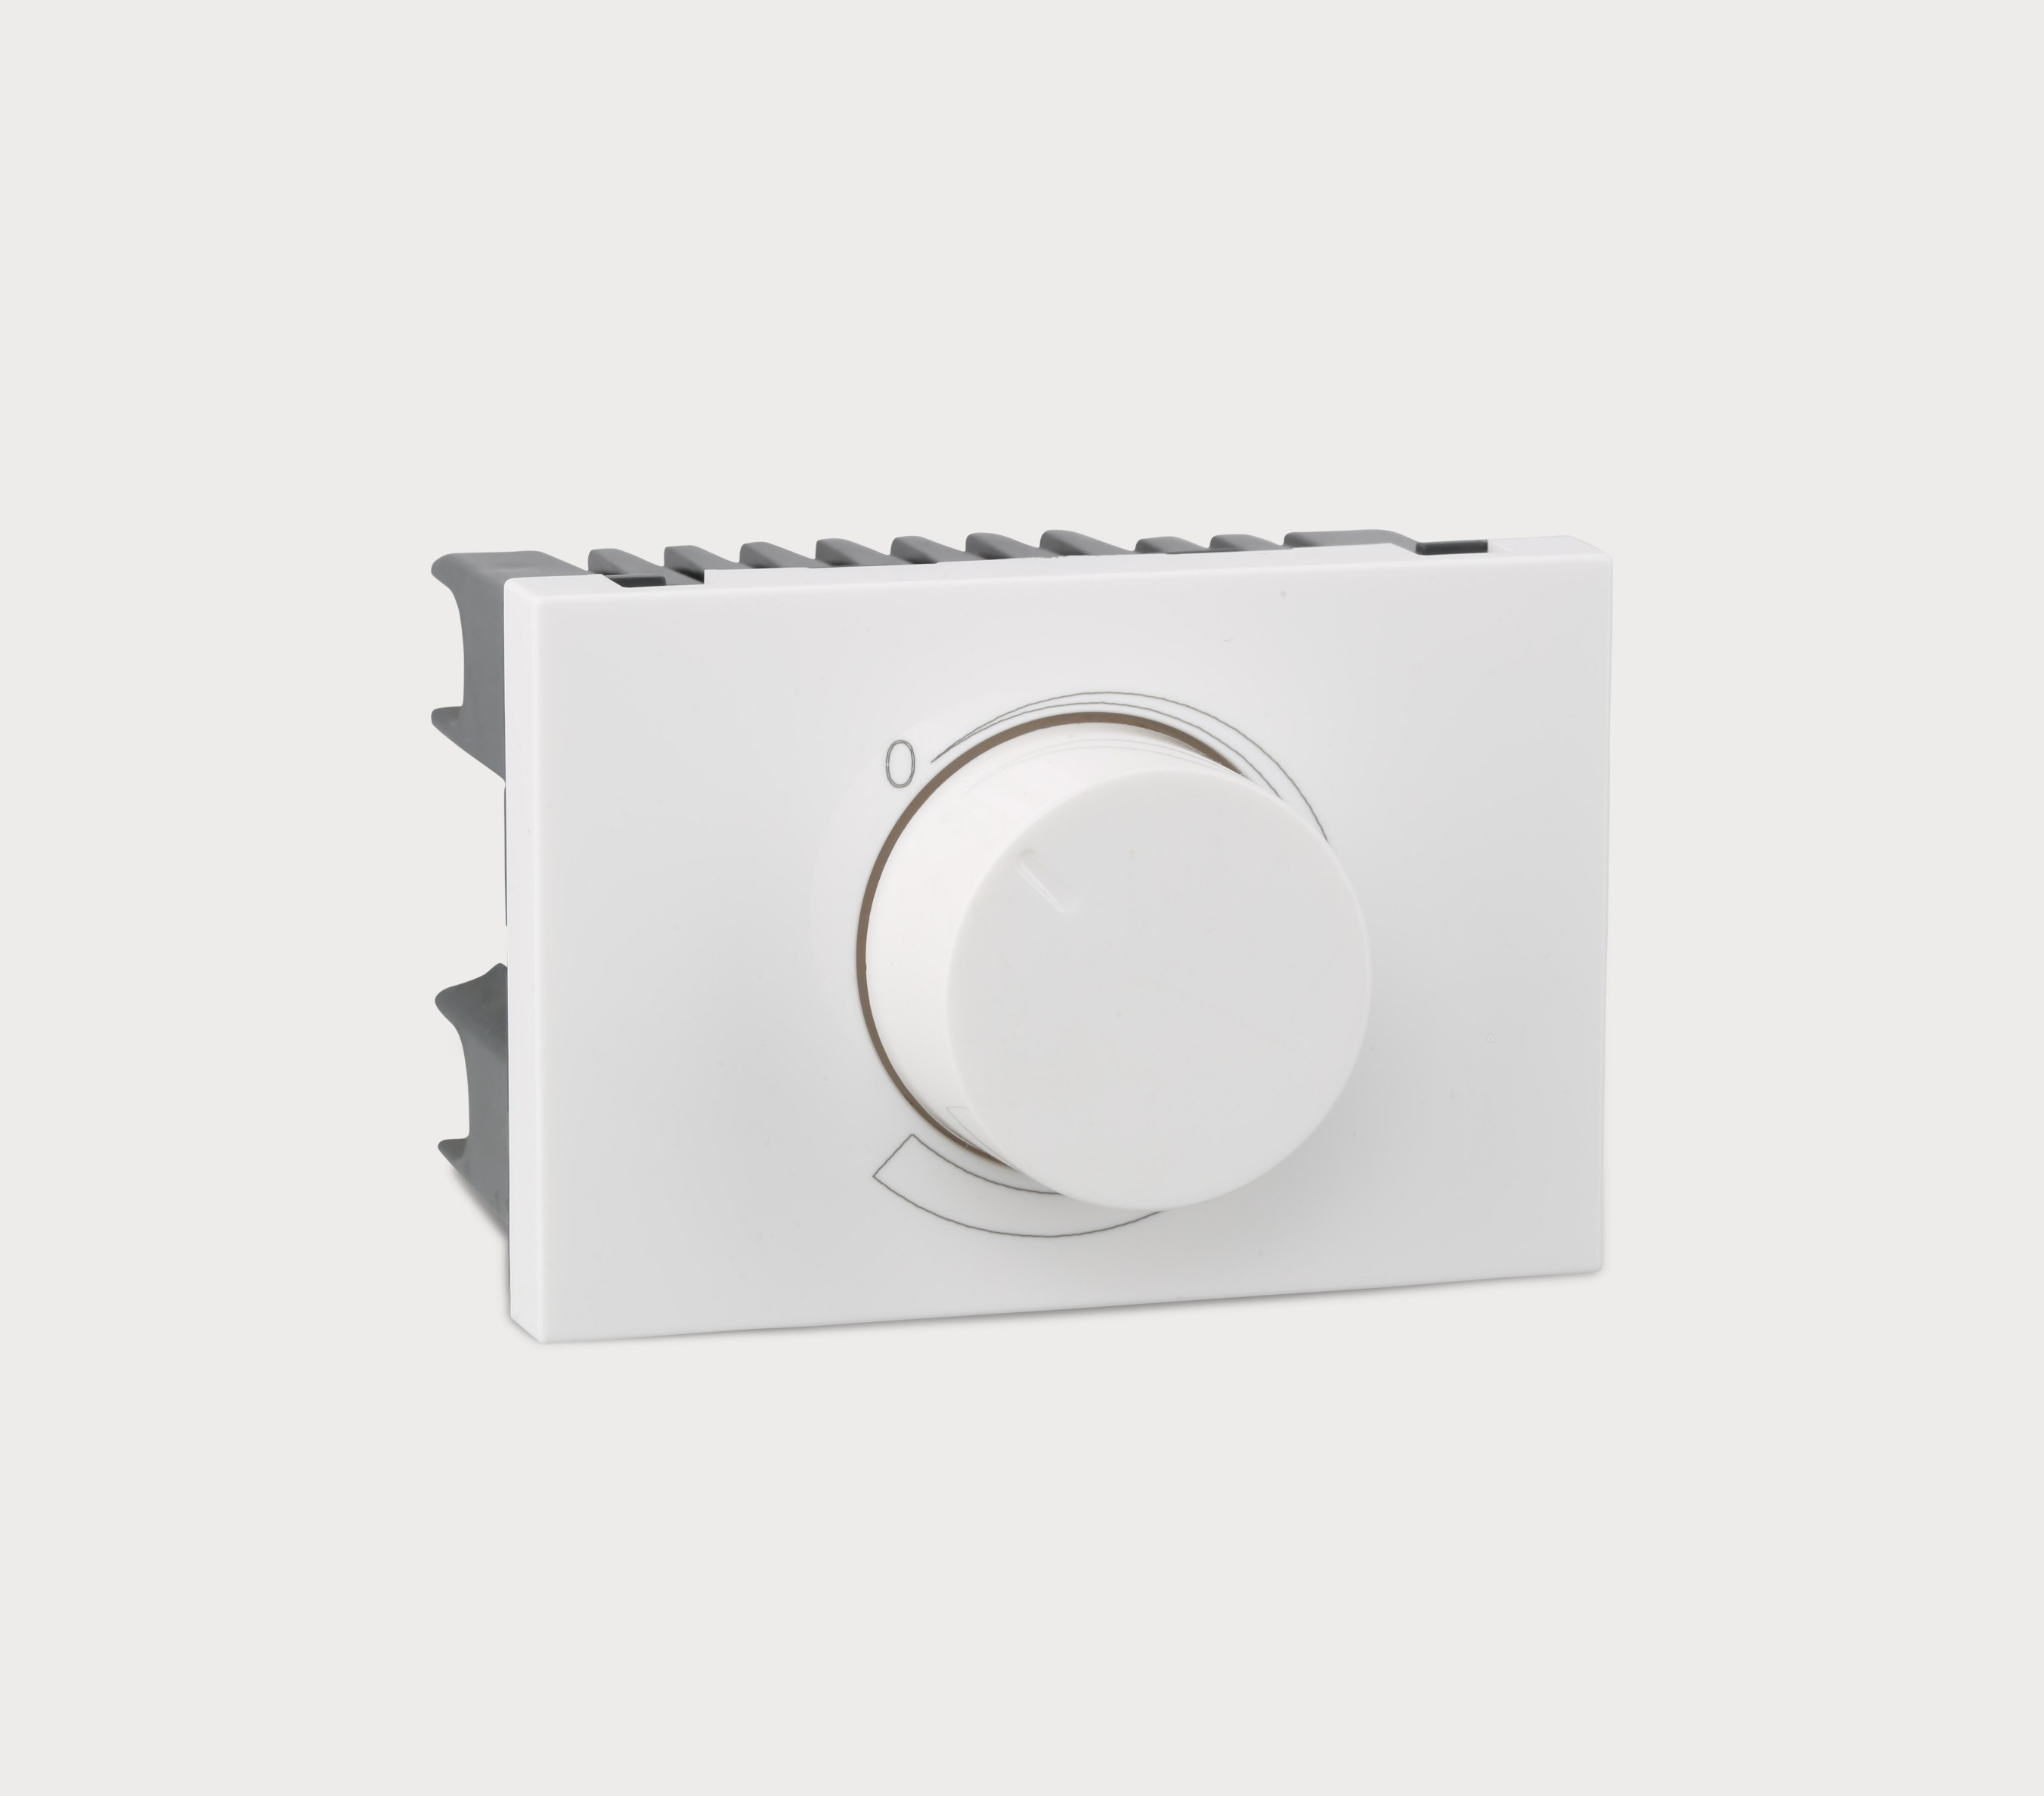 650W Rotary Dimmer (White) 673025 - Electrical and Networking ...